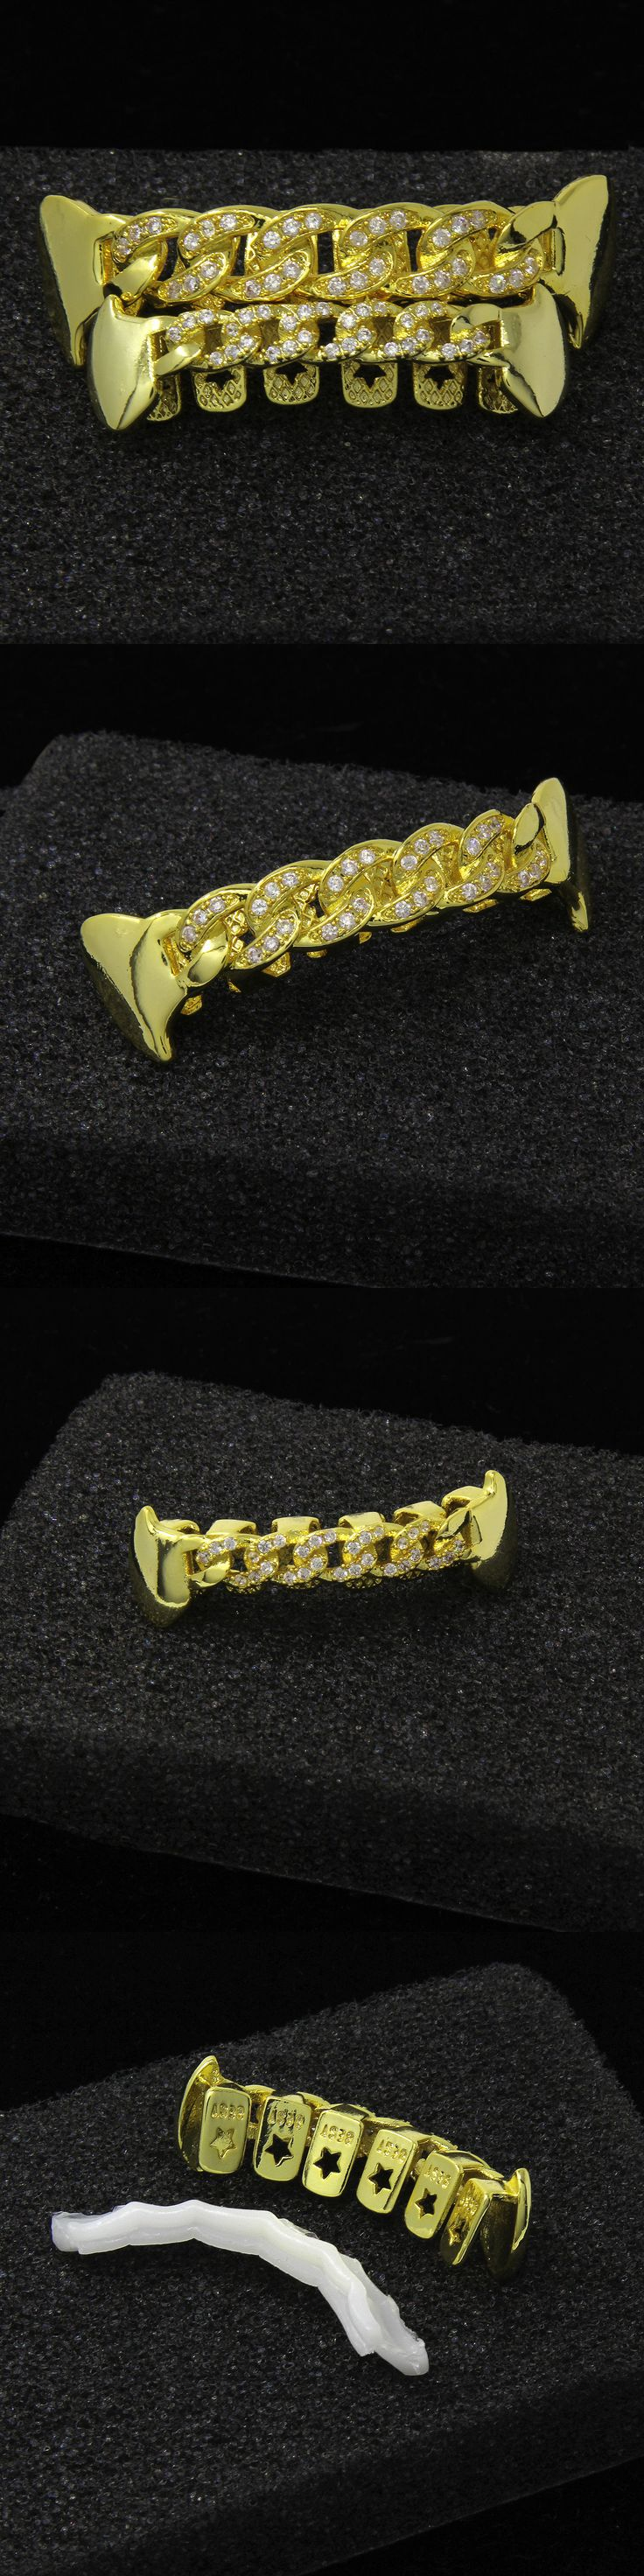 Grillz Dental Grills 152808: Custom 14K Gold Plated Hip Hop Teeth Cz Cuban Fang Grillz Top And Bottom Grill Set -> BUY IT NOW ONLY: $44.99 on eBay!